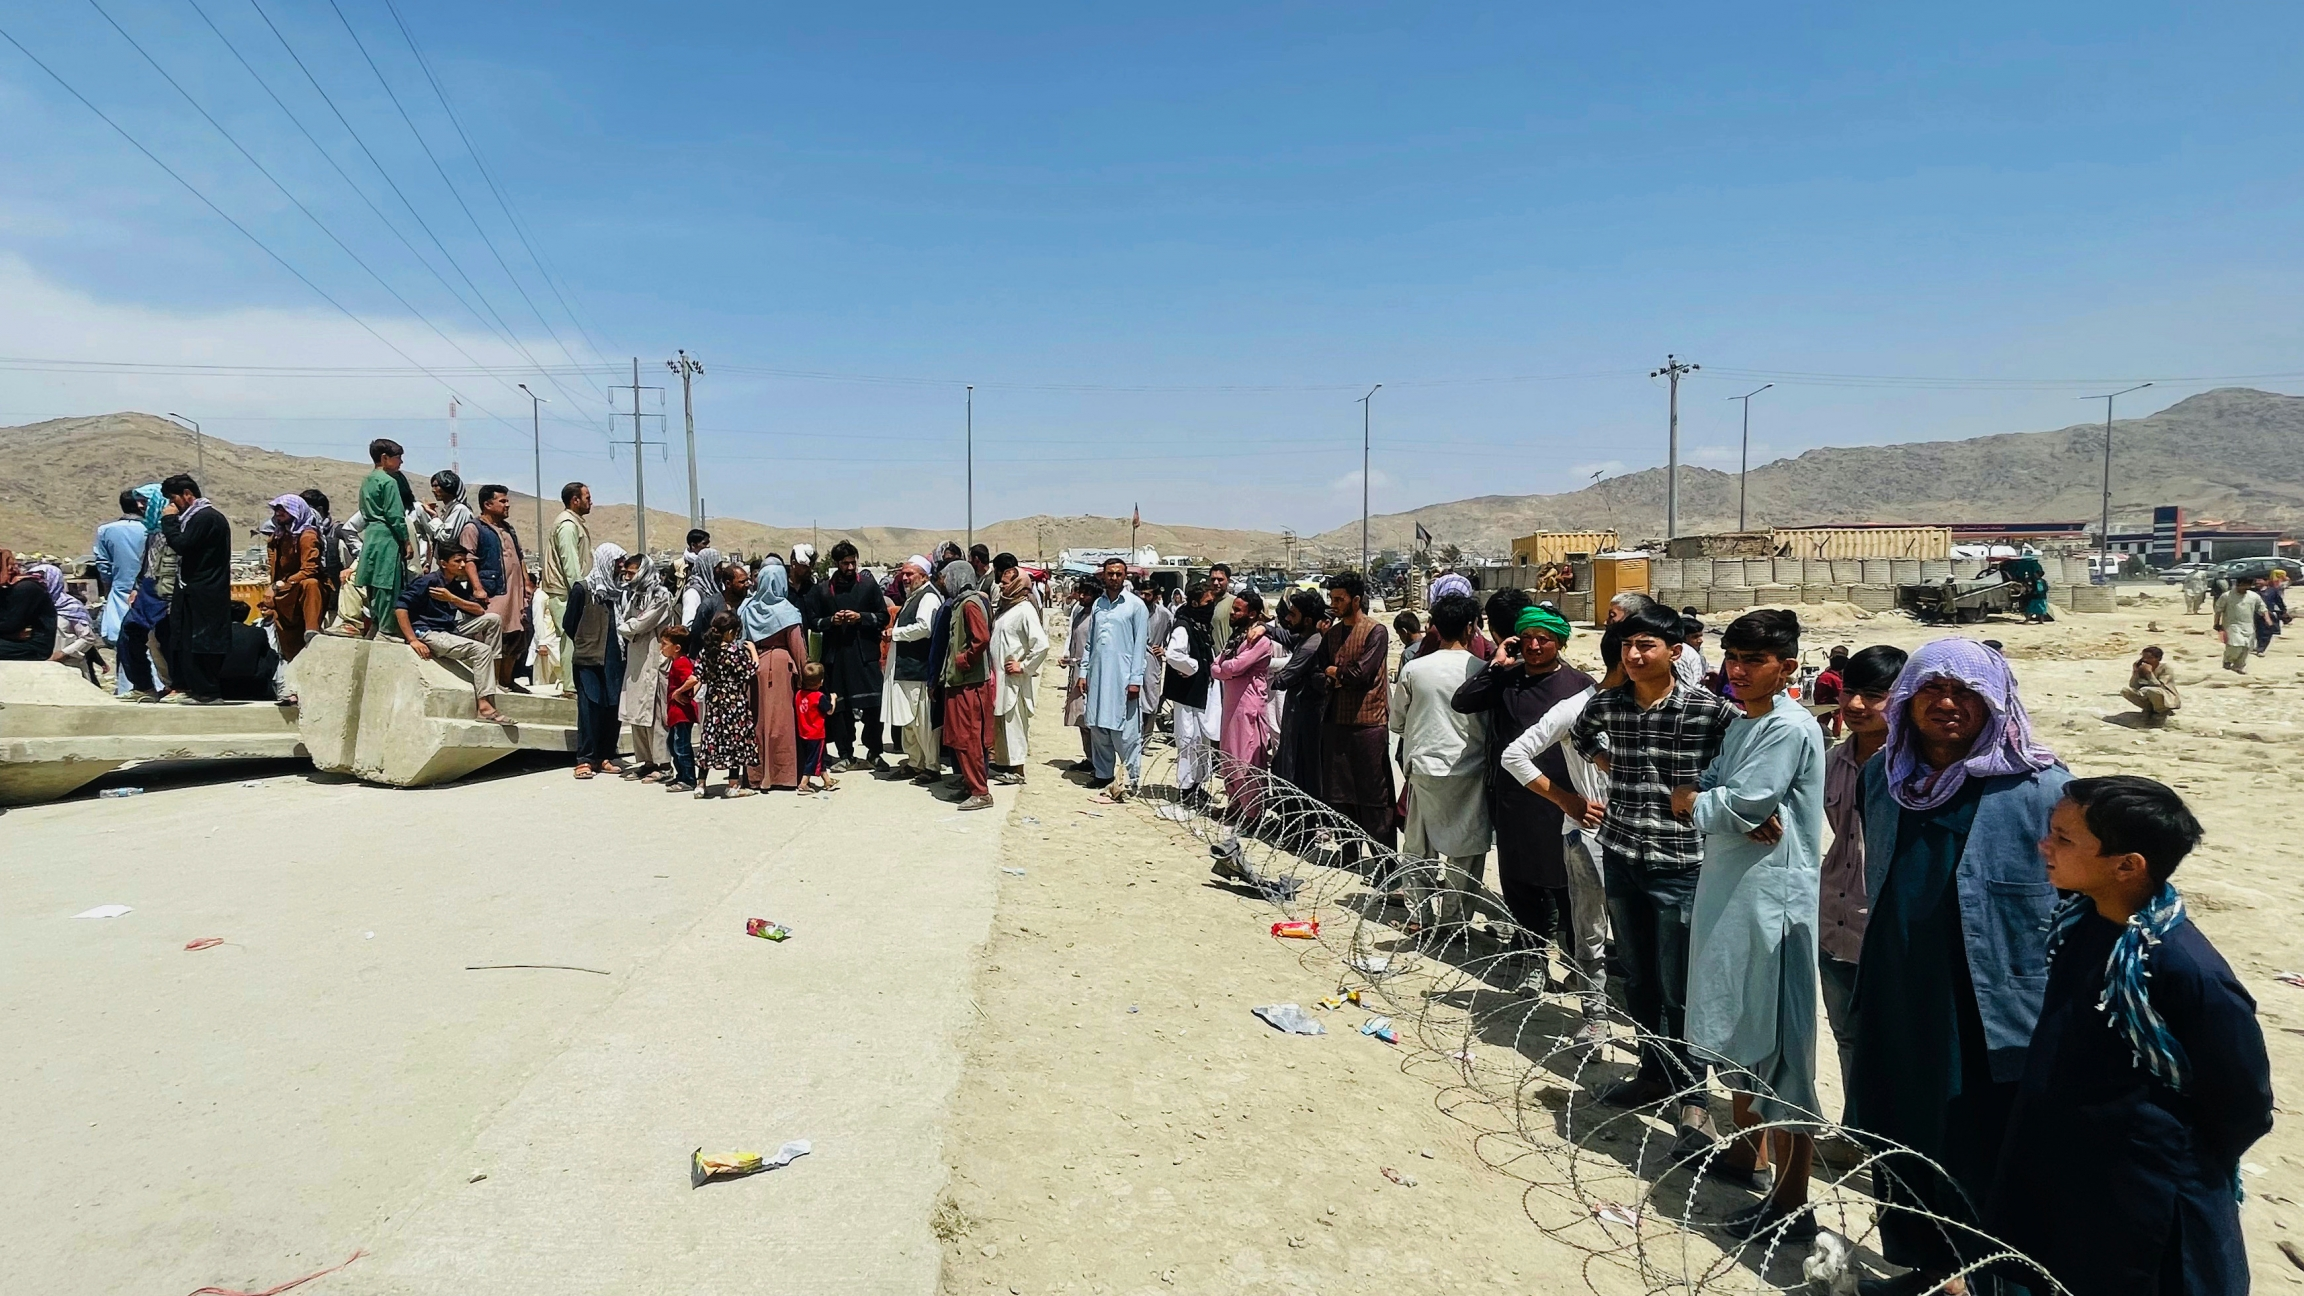 Hundreds of people gather outside the international airport in Kabul, Afghanistan, Aug. 17, 2021.